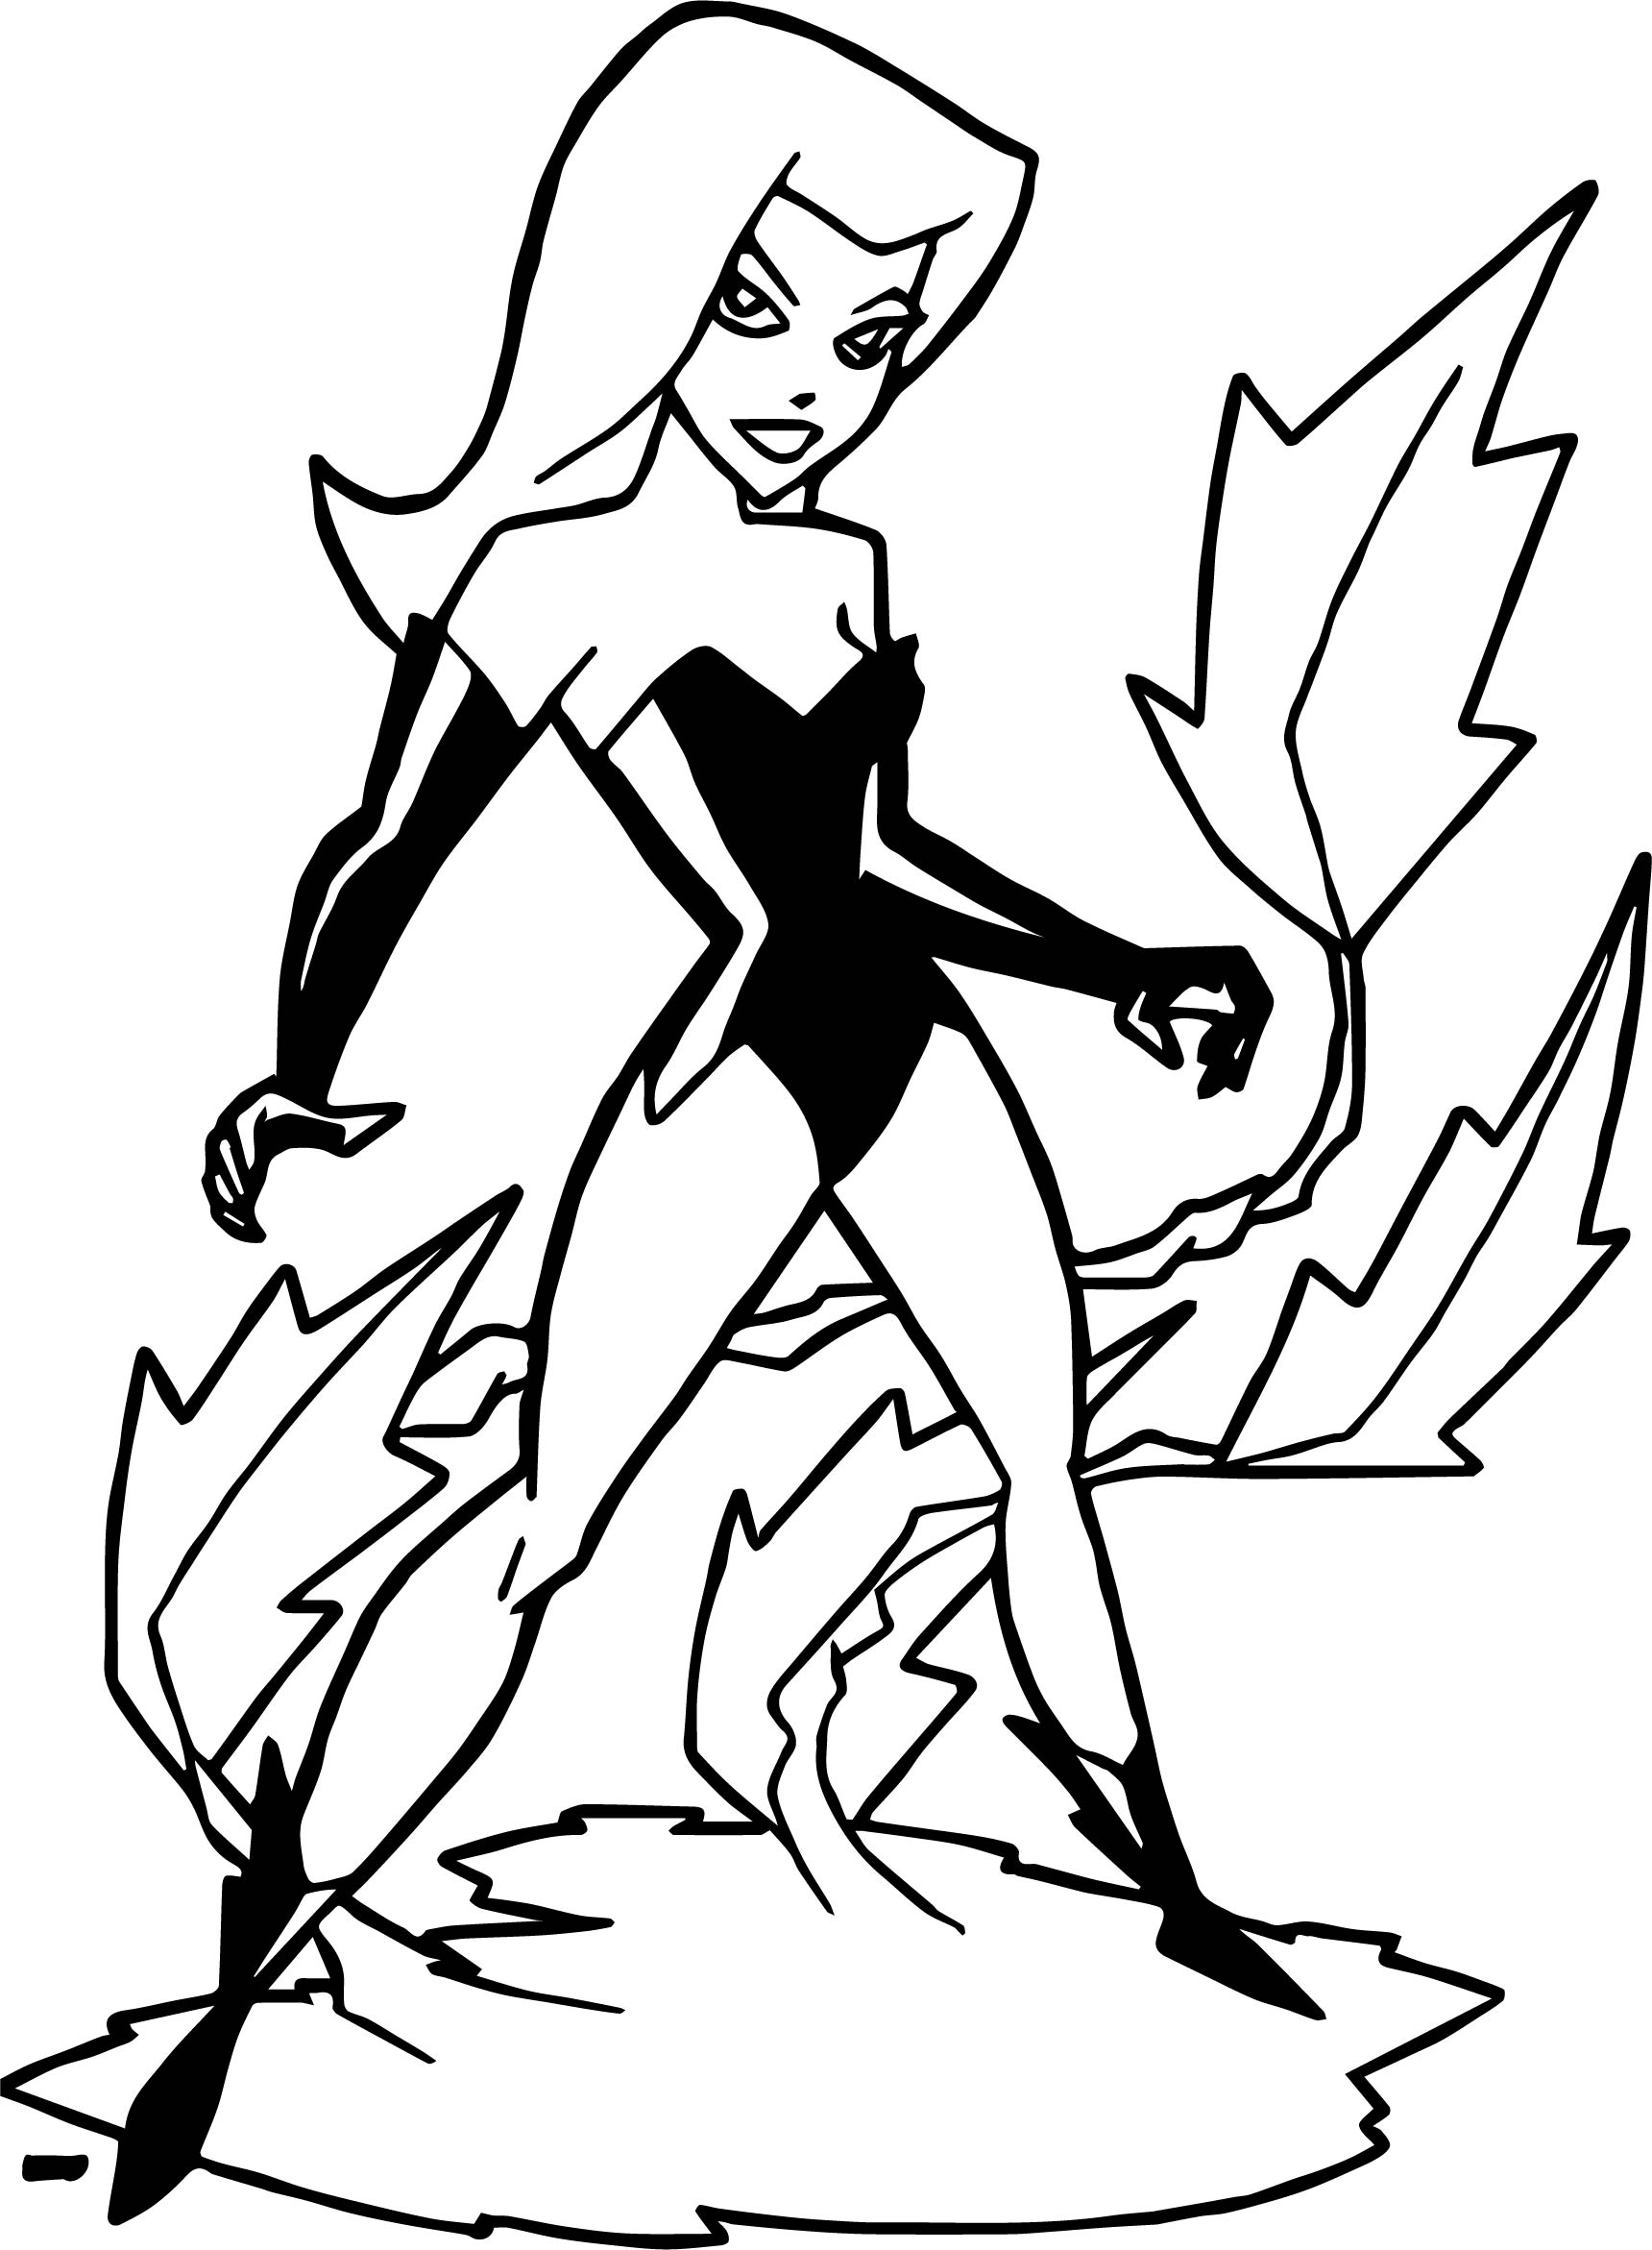 poison ivy colouring pages poison ivy coloring pages sketch coloring page ivy colouring poison pages